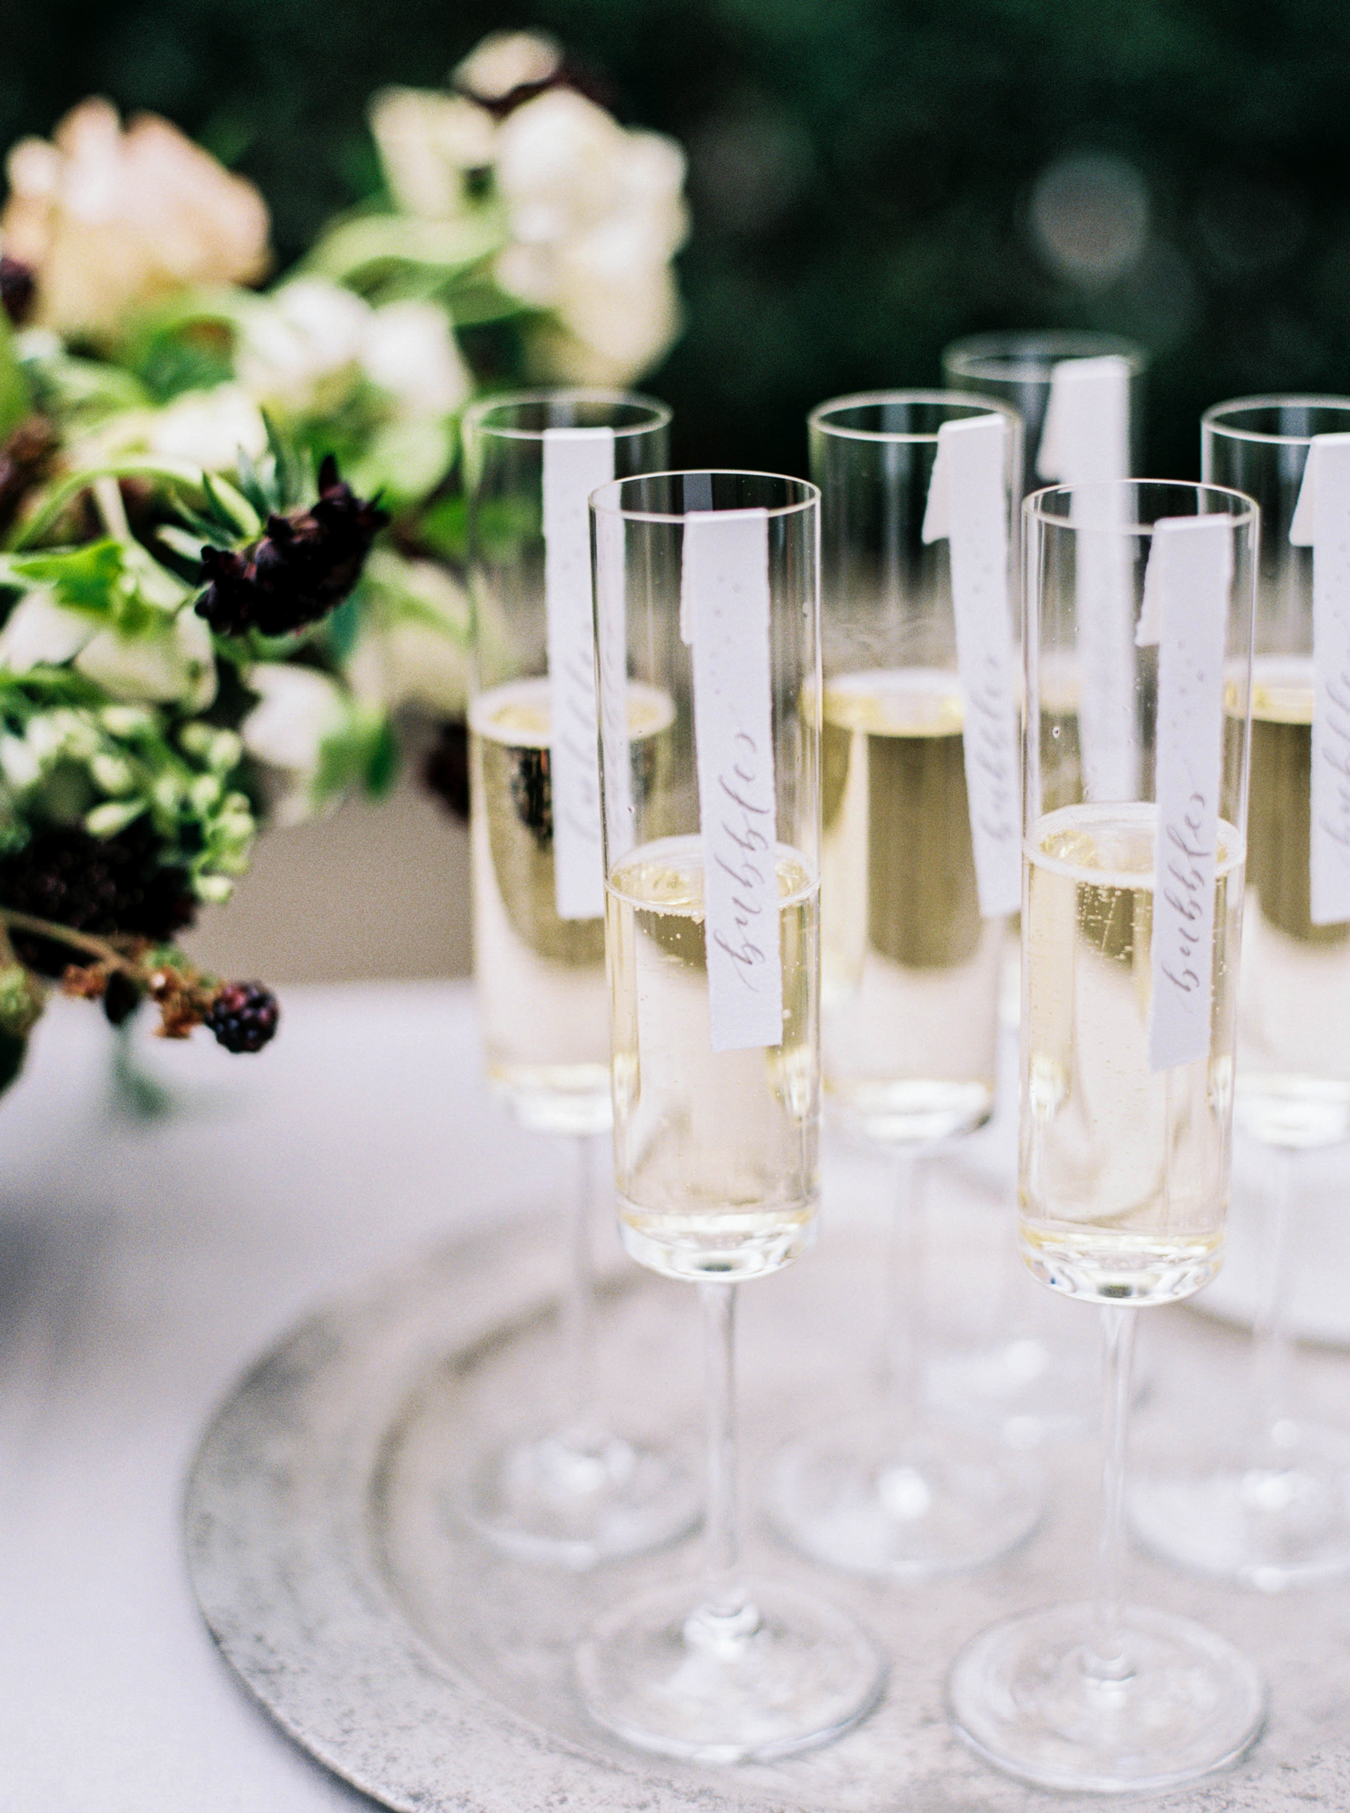 champagne flutes one silver serving tray with Calligraphed Labels